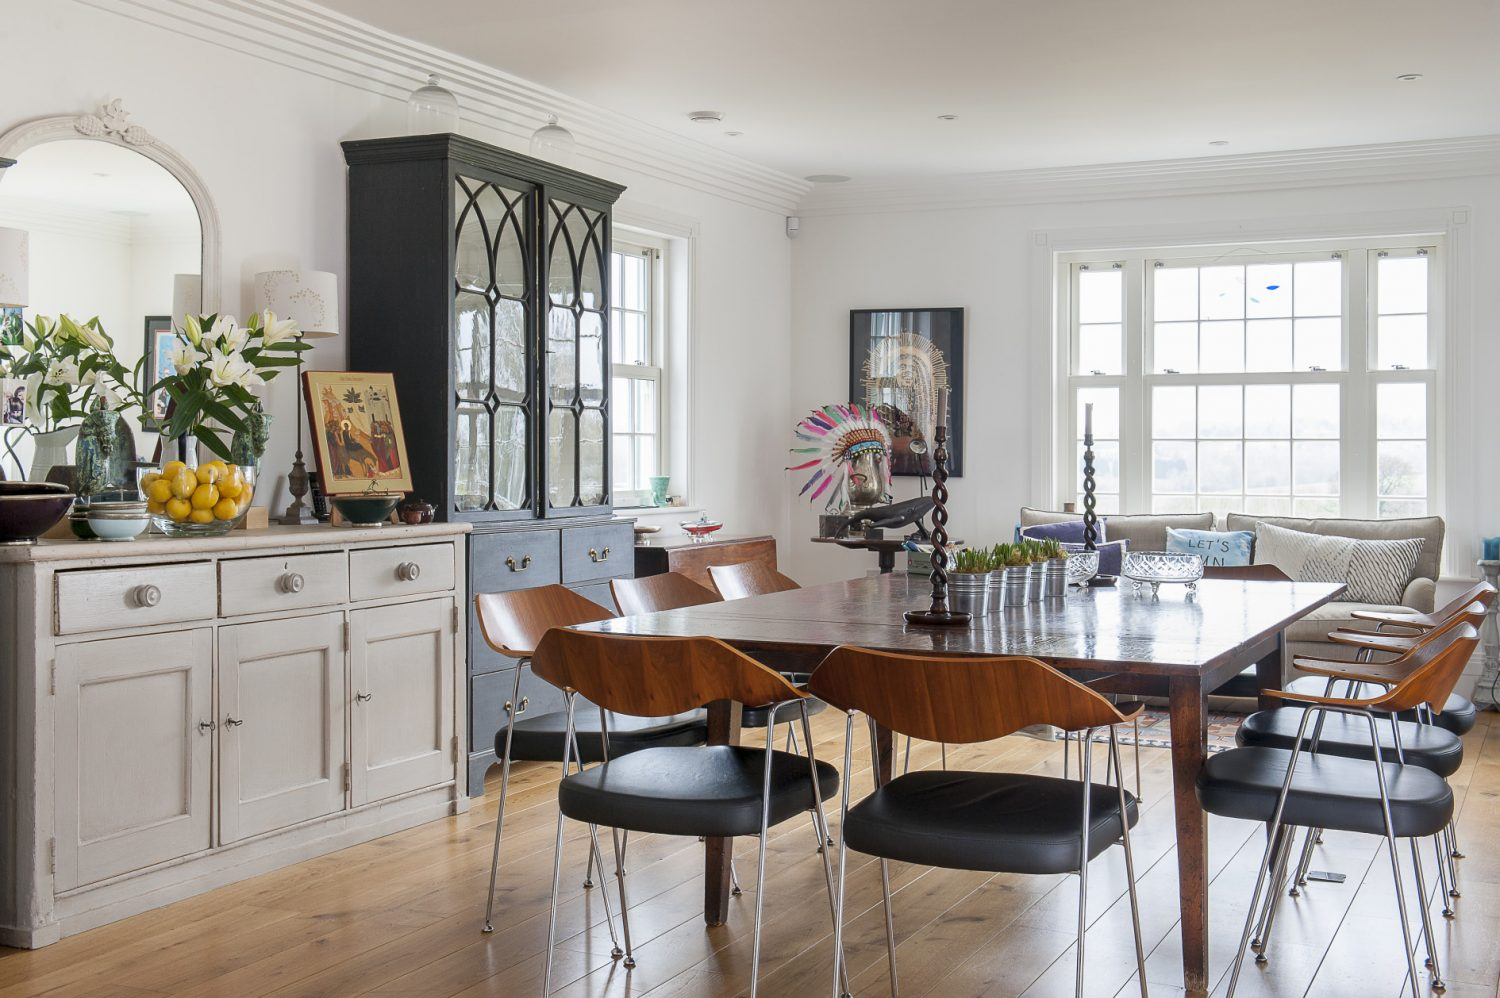 The Smiths' light-filled home, decorated in white and grey, is the perfect backdrop for artefacts, paintings, sculptures and junk finds that the family have collected during their travels. The dining chairs are copies of a classic 1960s Robin Day 365 design, bought from Habitat many years ago